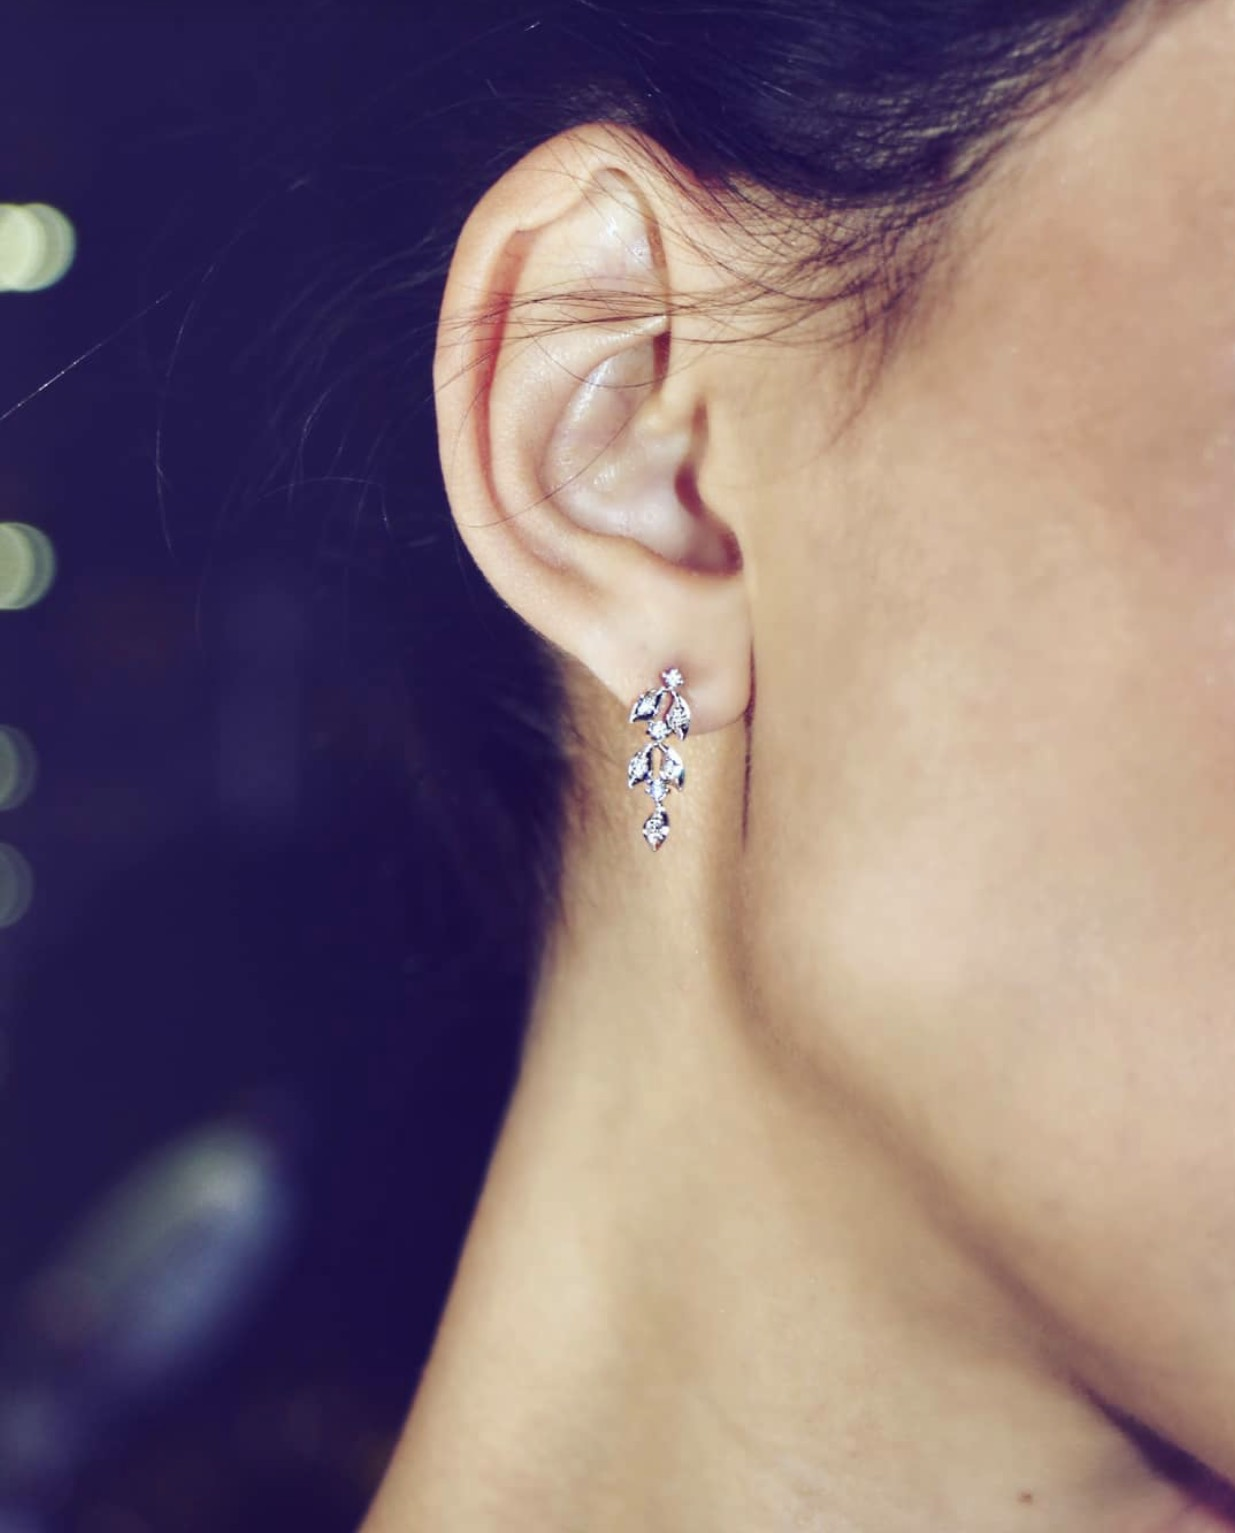 Aisha Earrings by Amira Karaouli on curated-crowd.com